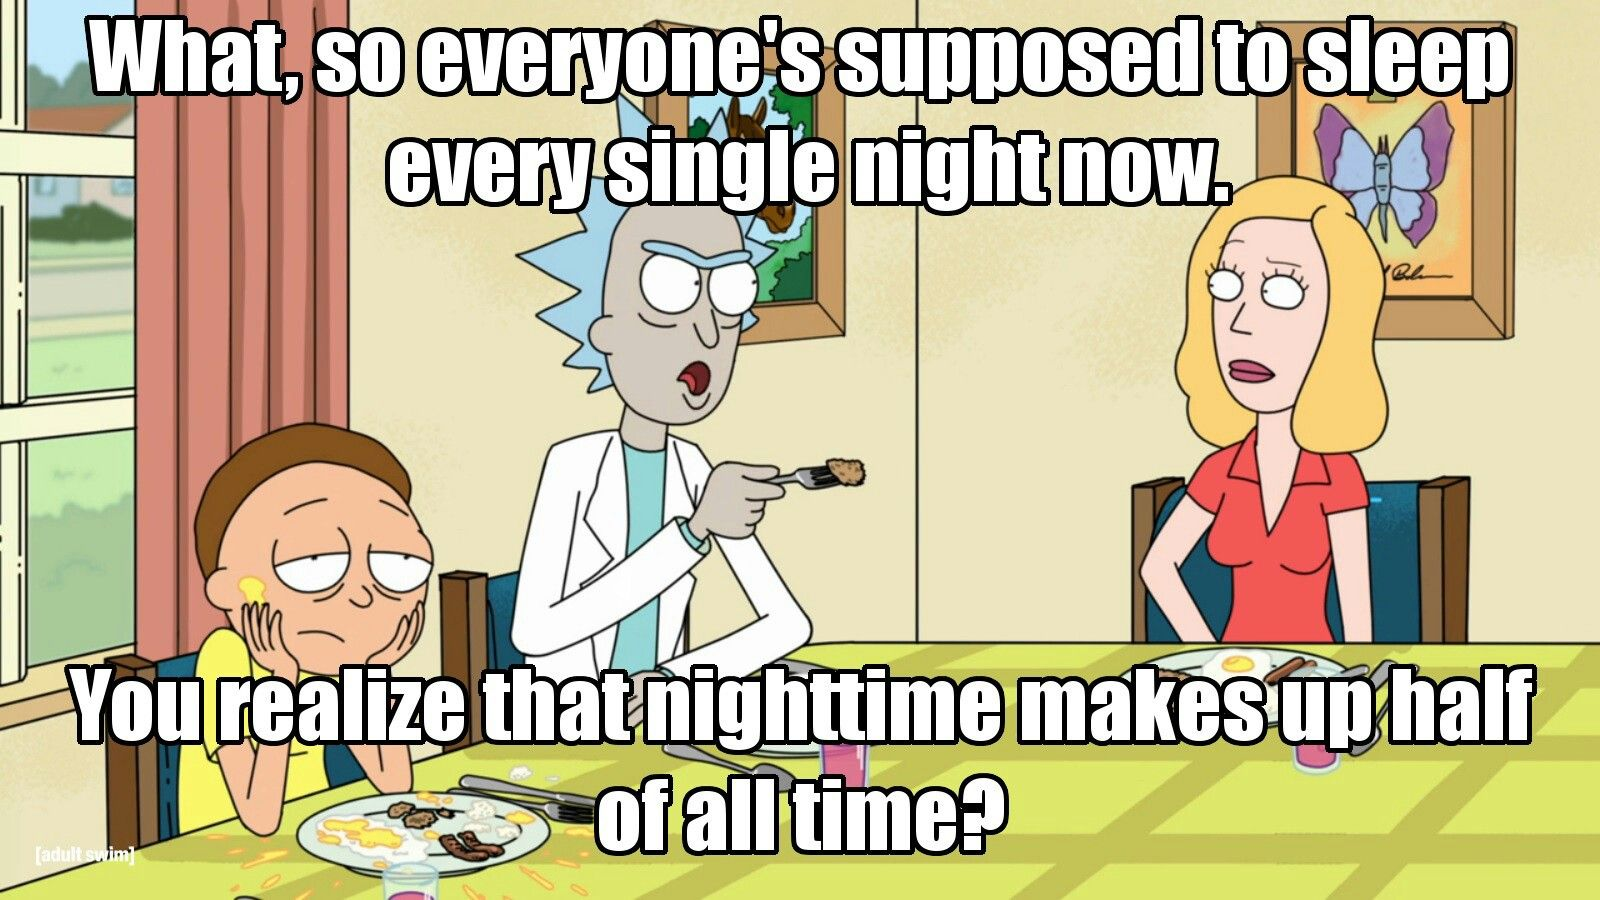 Best Rick And Morty Quotes Pindillon L On Cool Stuff  Pinterest  Stuffing